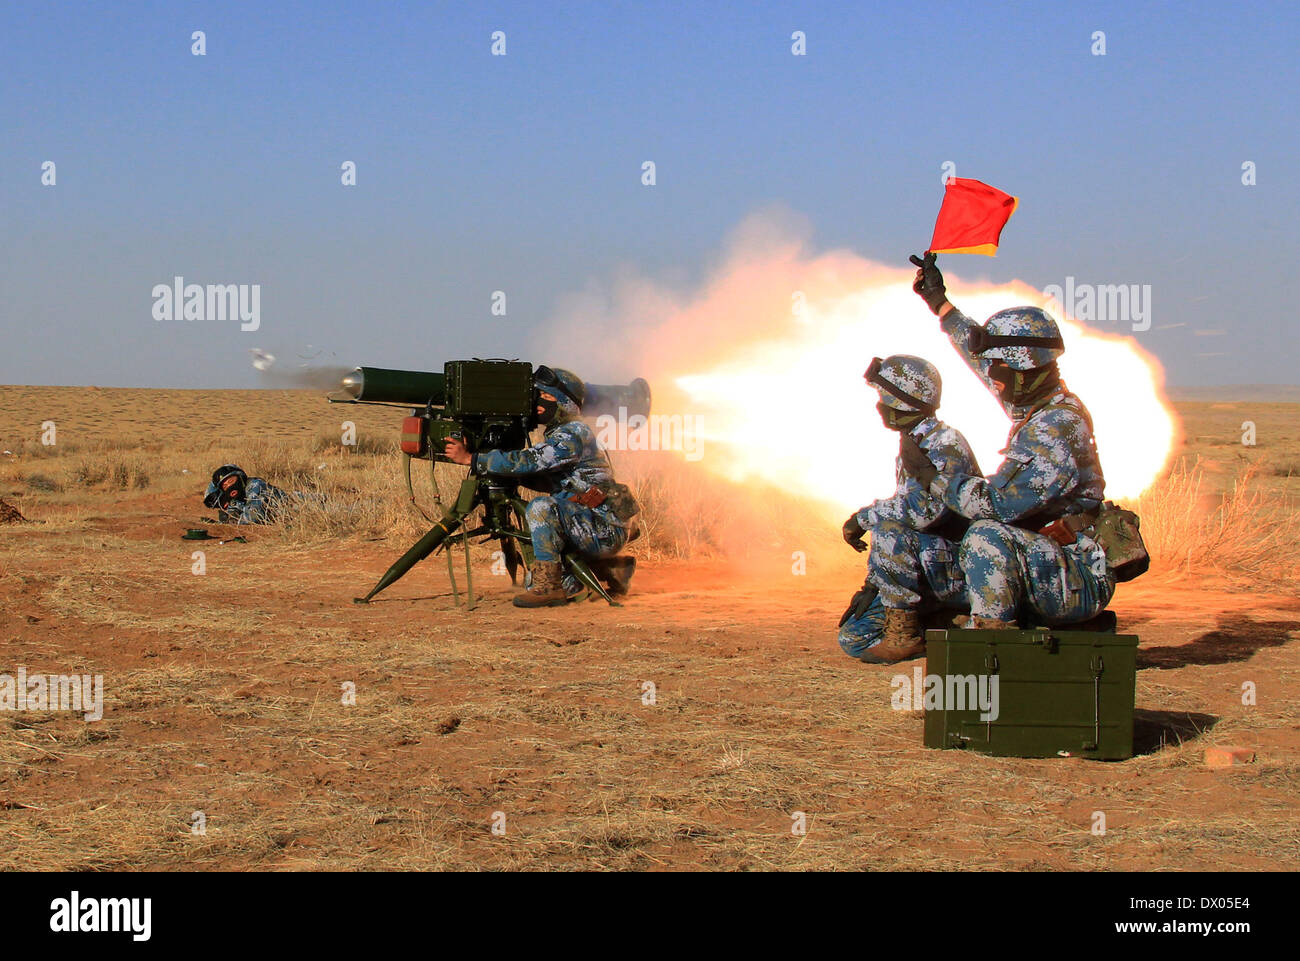 Hohhot. 15th Mar, 2014. Marines participate in a war game in north China's Inner Mongolia Autonomous Region, March 15, 2014. The marine corps with the Chinese navy on Friday concluded the war game to practise combat abilities in cold environments, according to military sources. Credit:  Zha Chunming/Xinhua/Alamy Live News - Stock Image